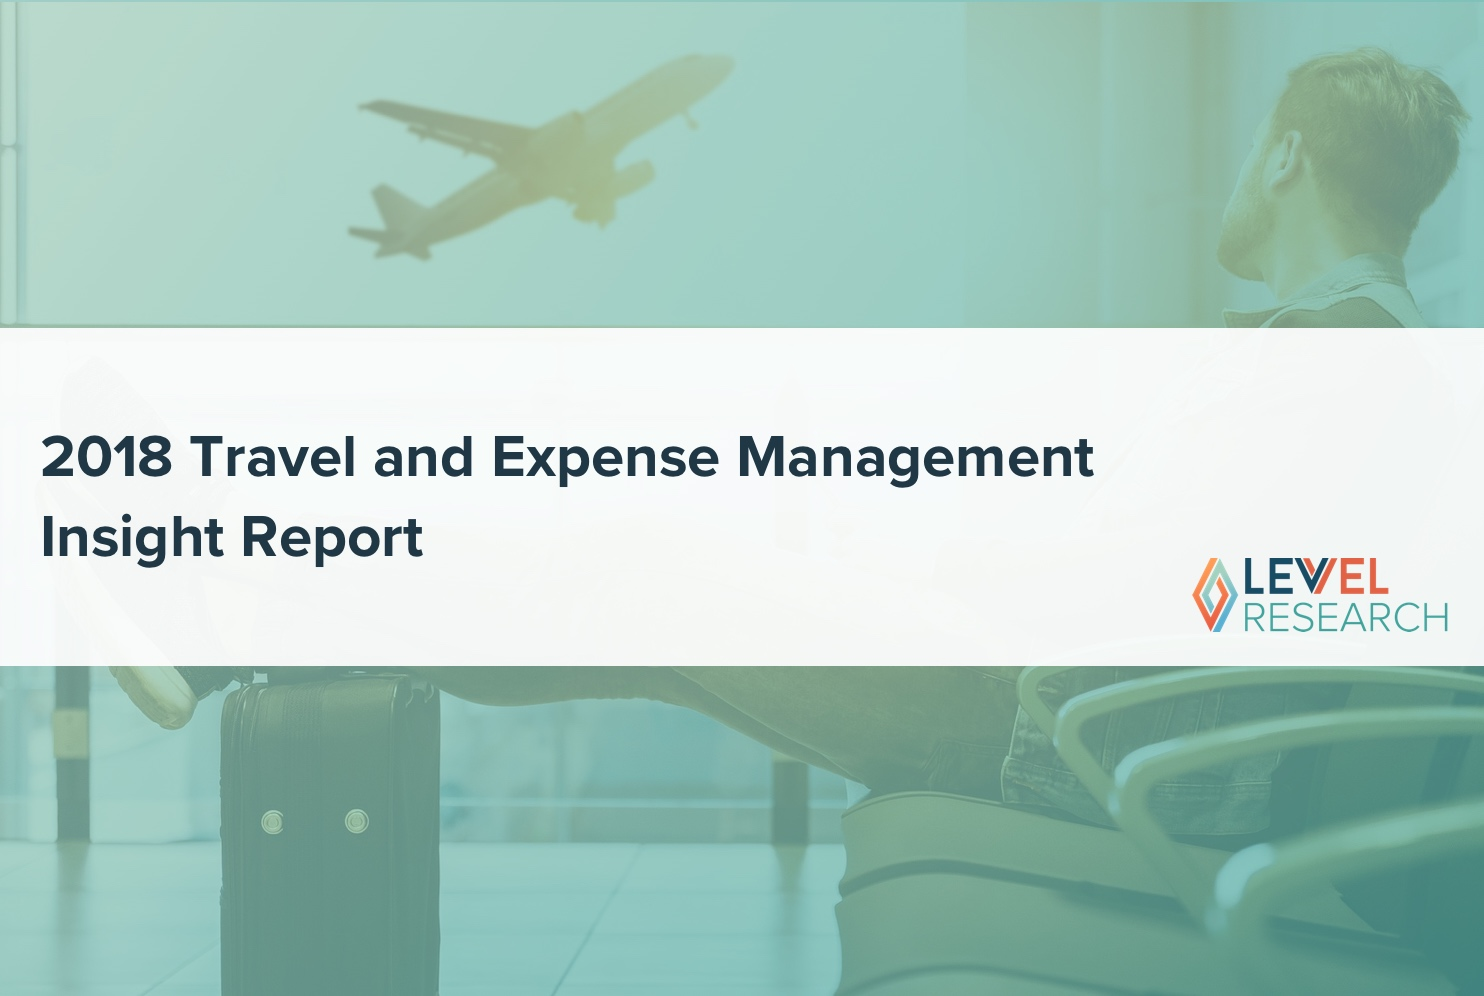 2018 Travel and Expense Management Insight Report